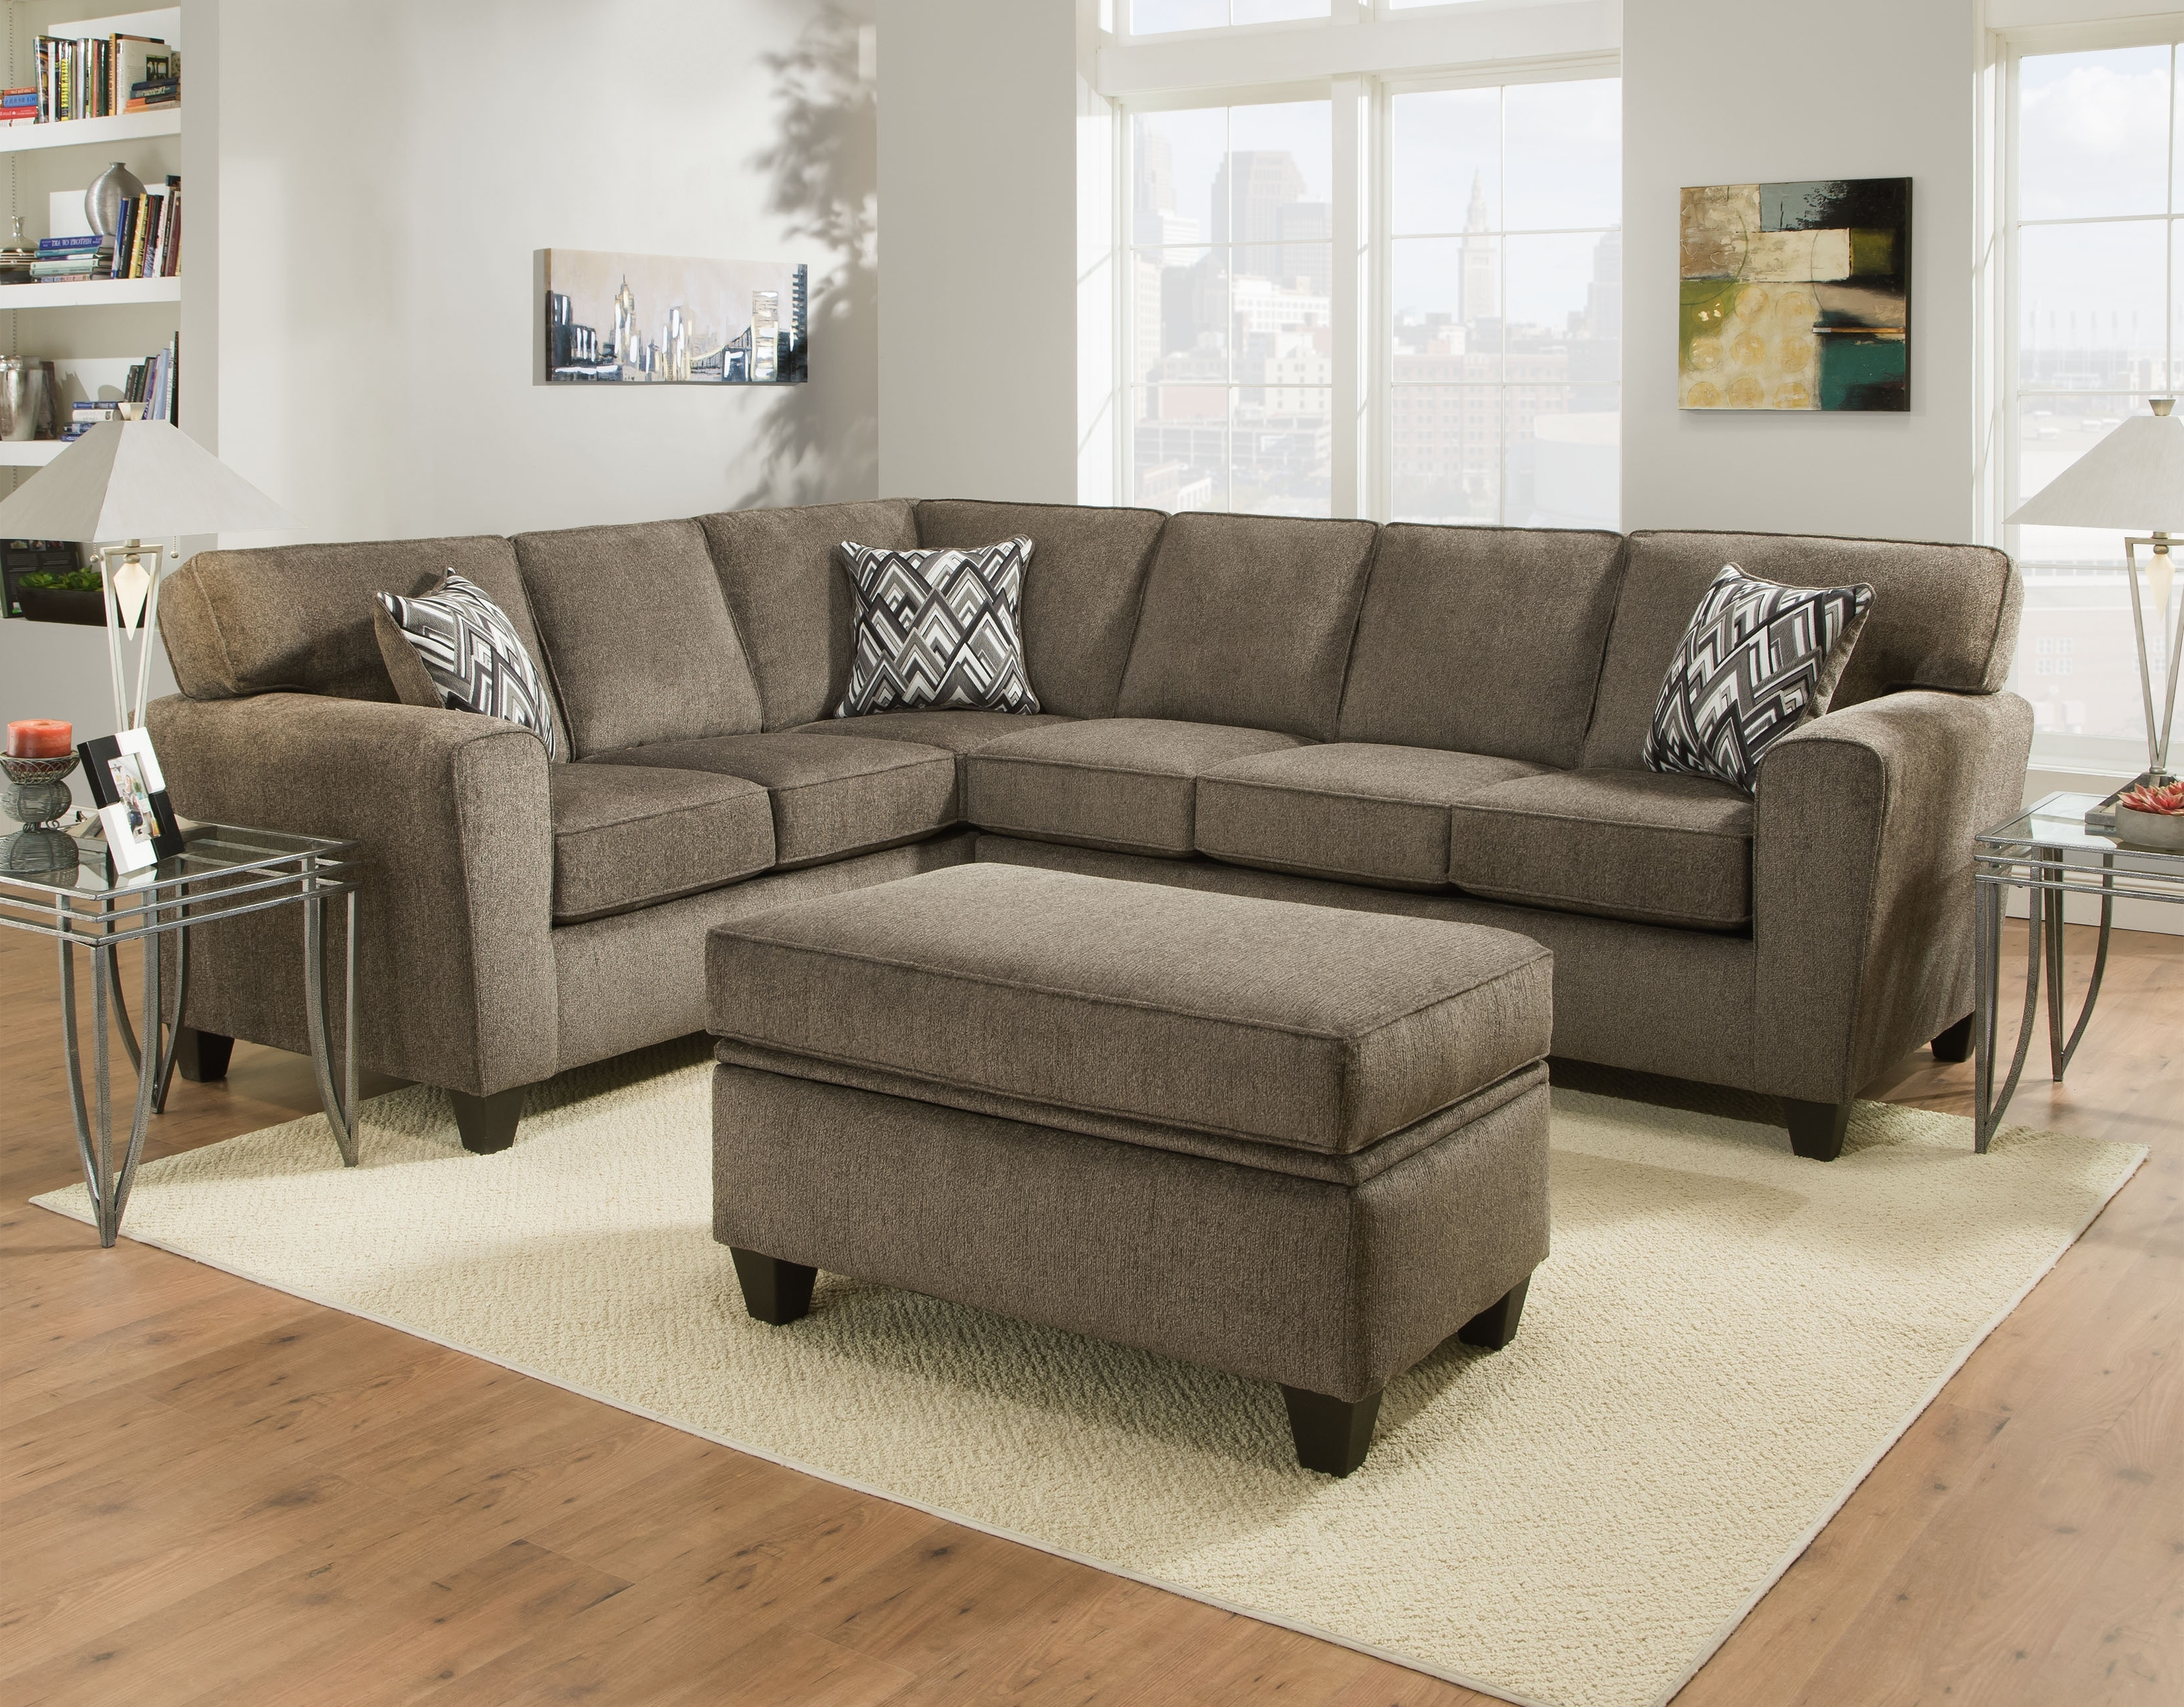 Most Current Living Room – Crazy Joe's Best Deal Furniture For Janesville Wi Sectional Sofas (View 2 of 15)